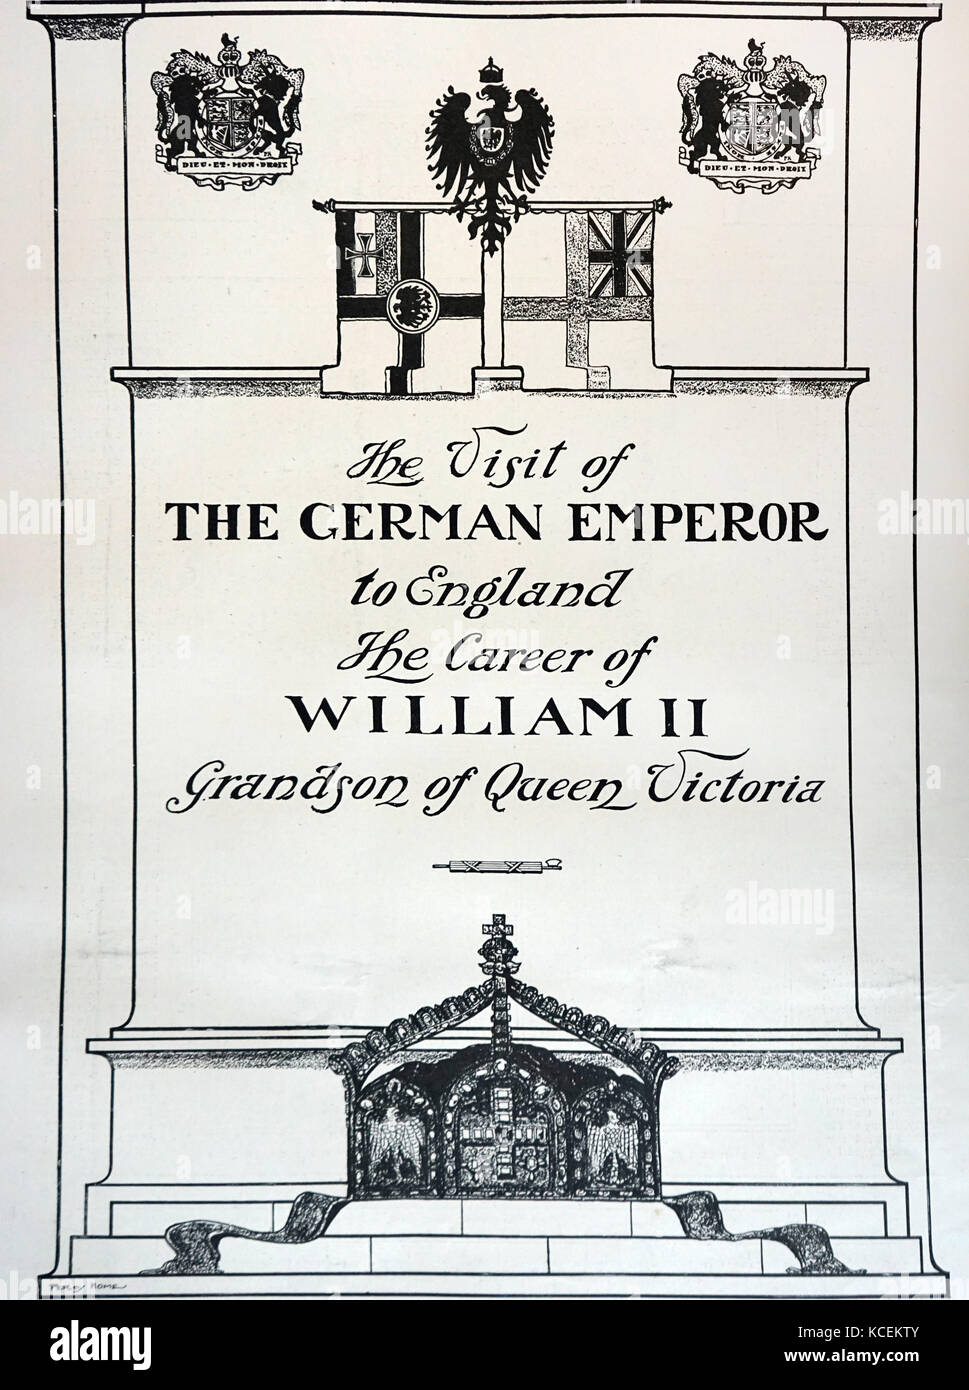 Title page of a programme commemorating a visit by Kaiser Wilhelm II (1859-1941) King of Prussia, to England for - Stock Image